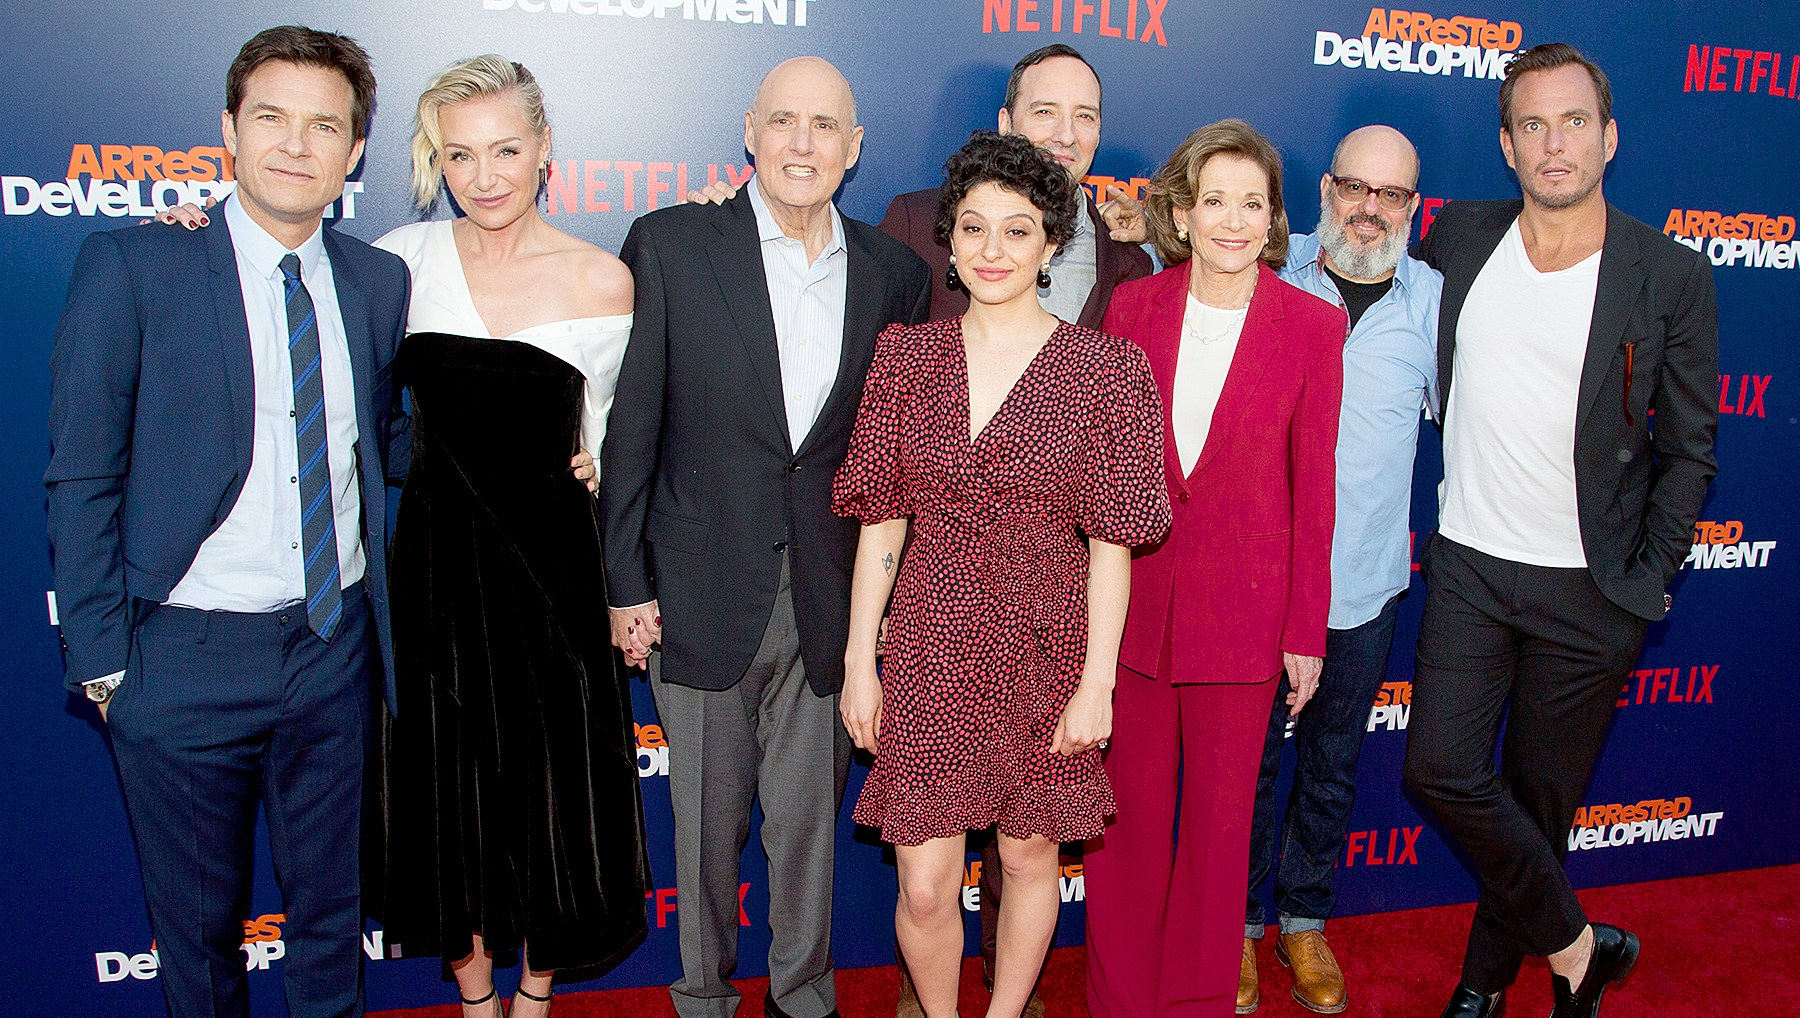 arrested-development-press-tour-cancelled